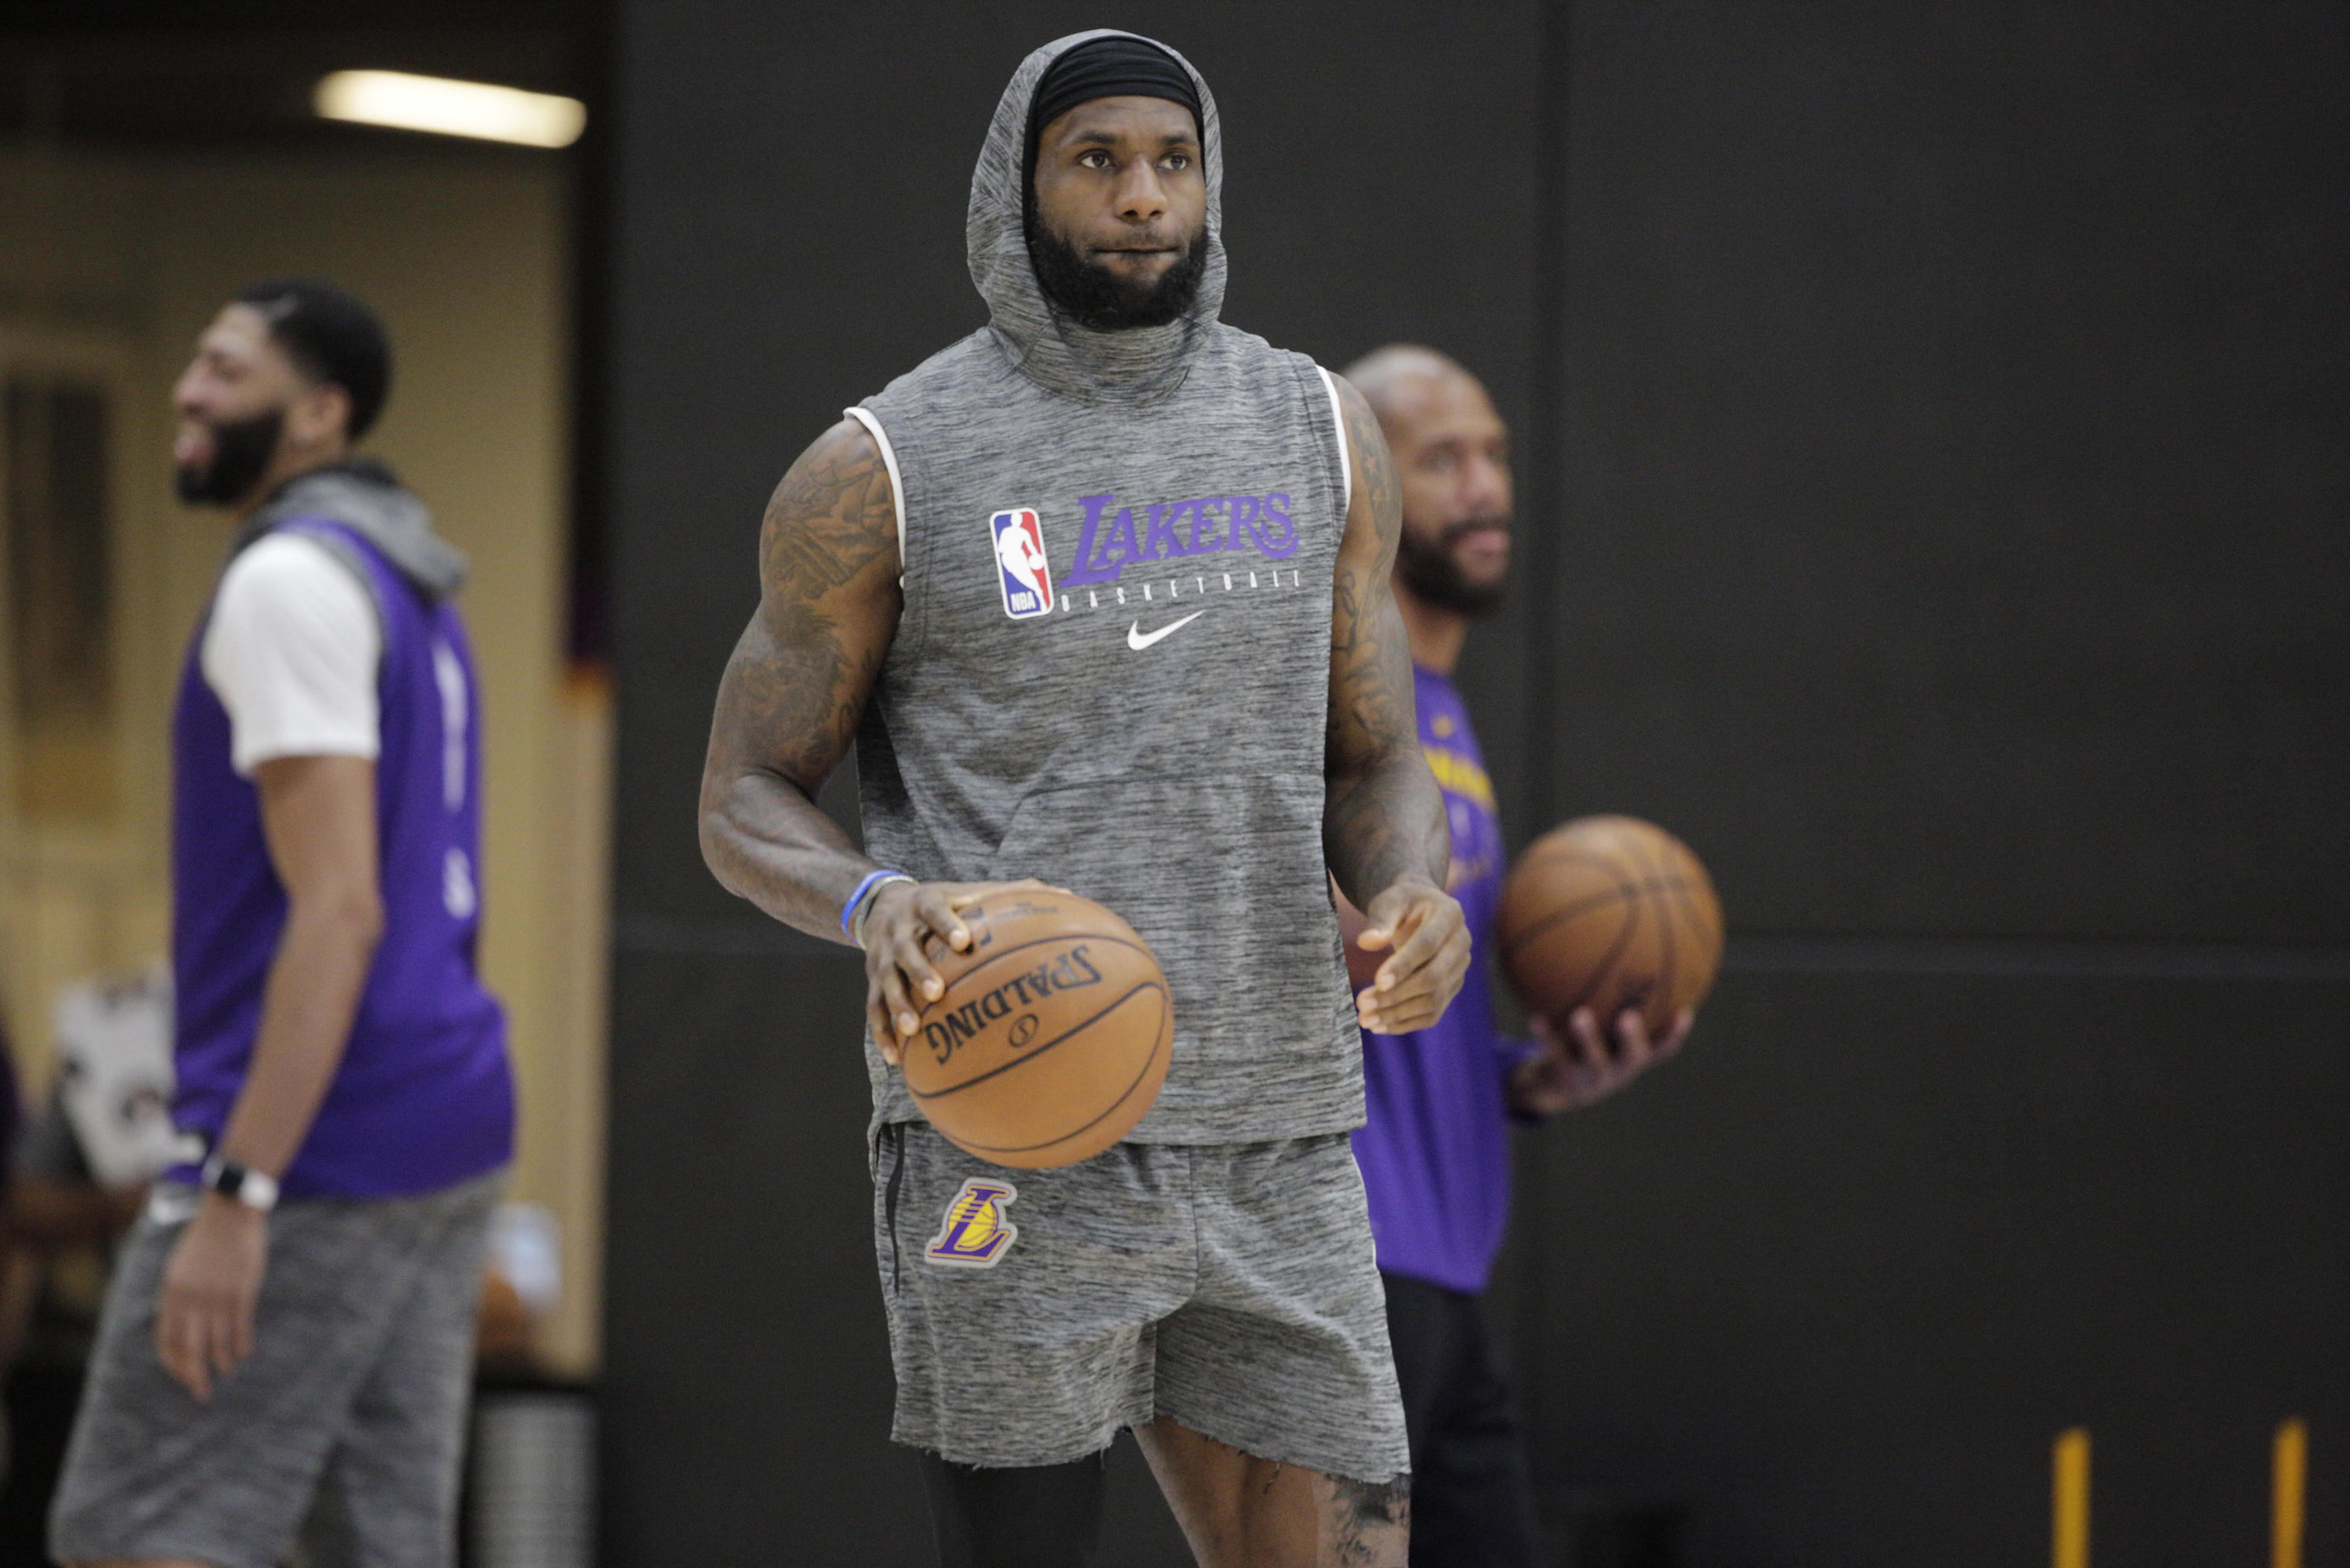 Lebron James Reveals Mamba 4 Life Tattoo In Honor Of Kobe Bryant Bleacher Report Latest News Videos And Highlights